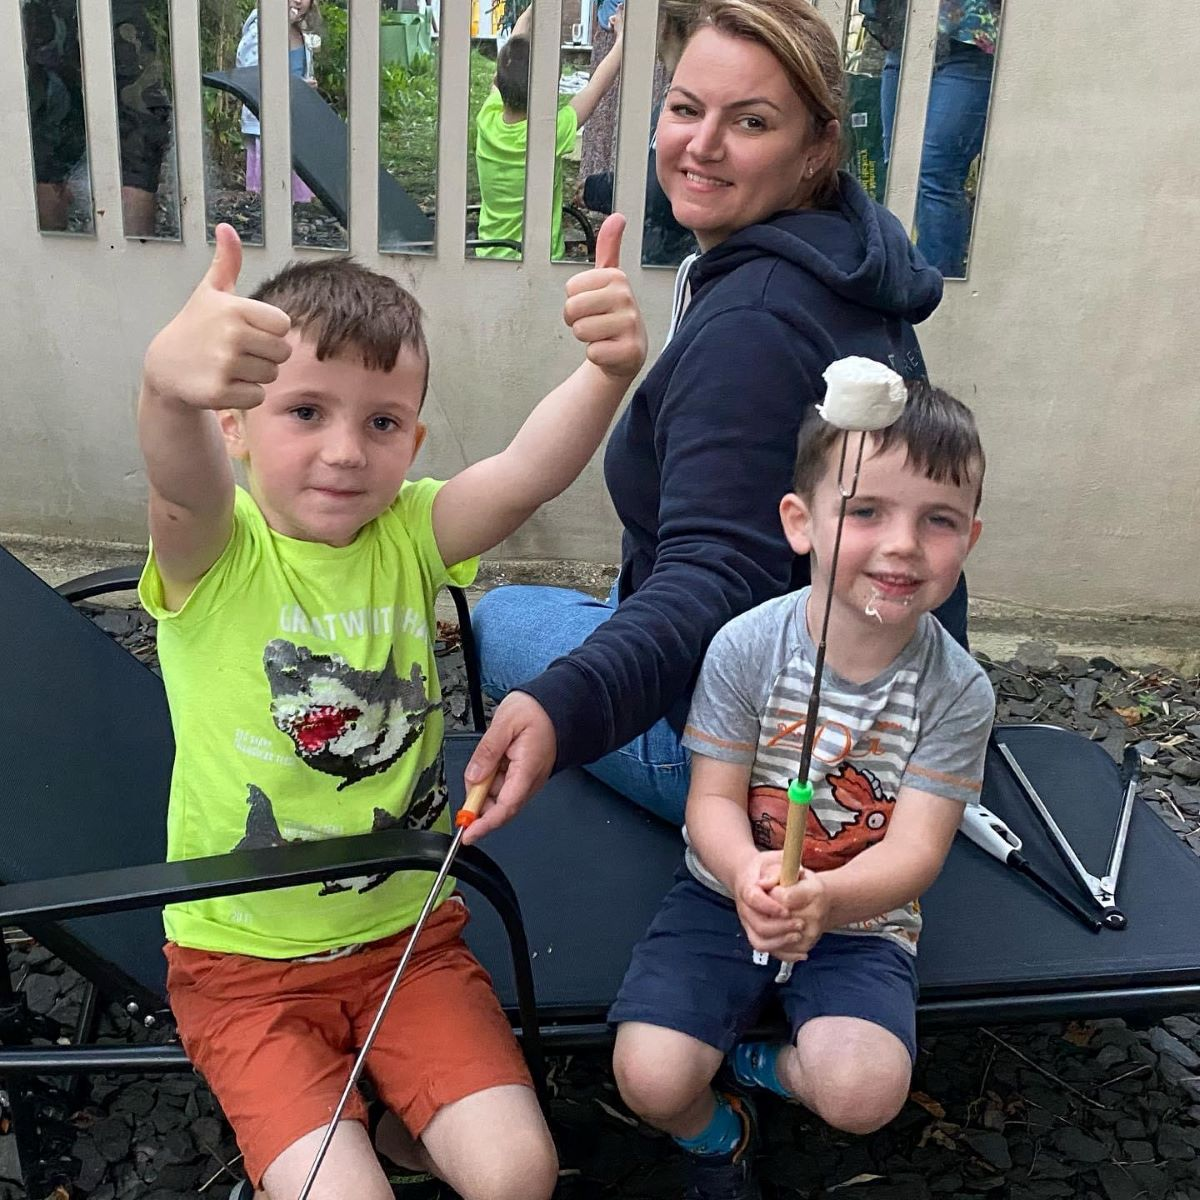 Experience: life as a single parent during covid